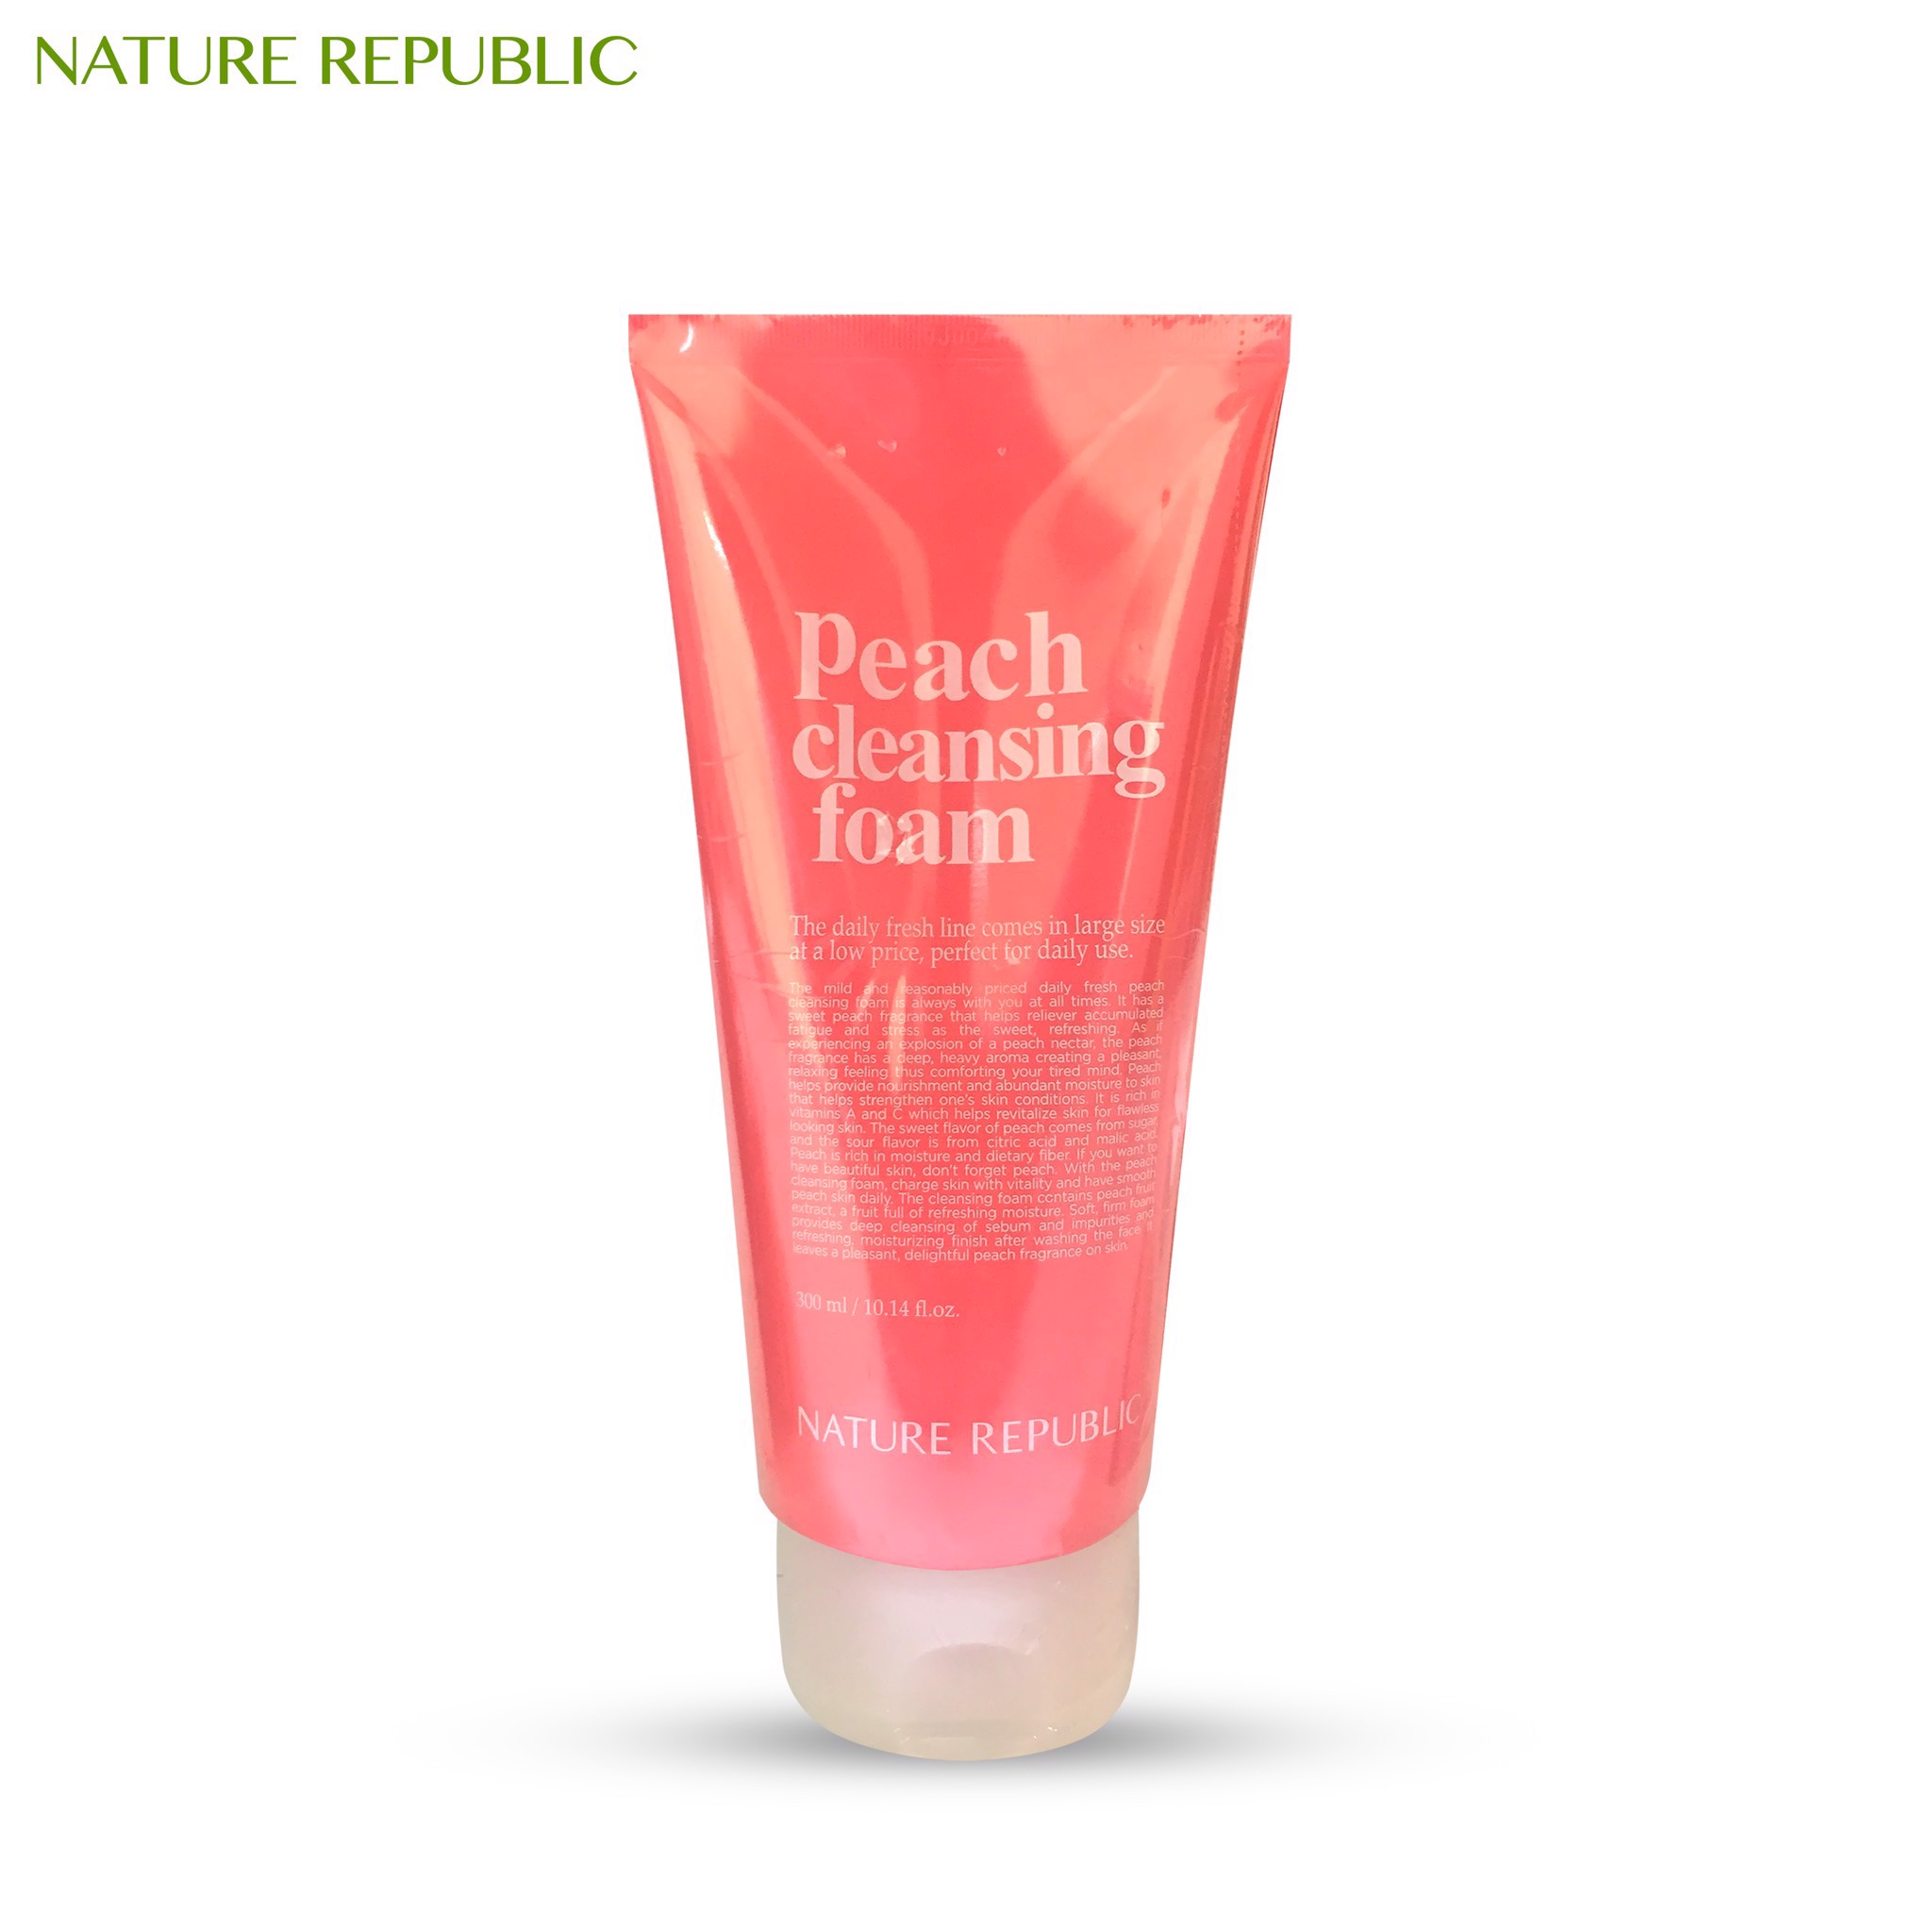 DAILY FRESH PEACH CLEANSING FOAM